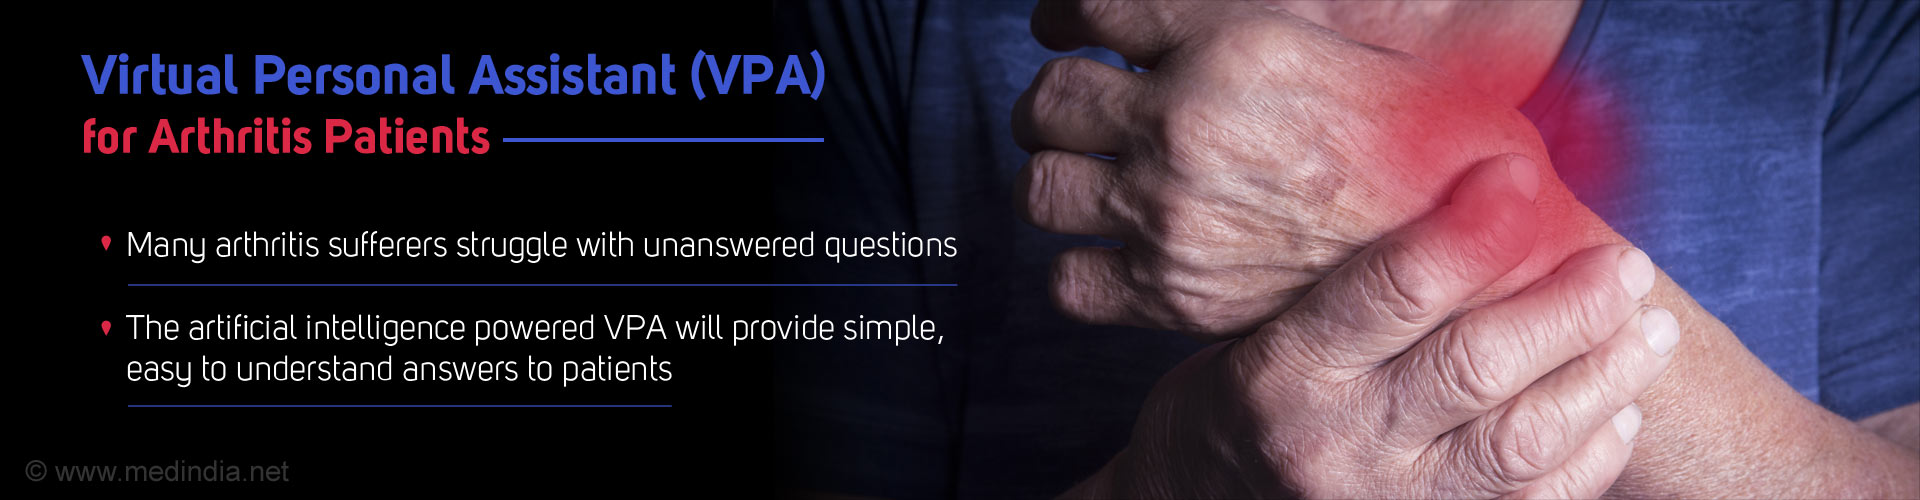 Virtual Personal Assistant (VPA) for Arthritis Patients